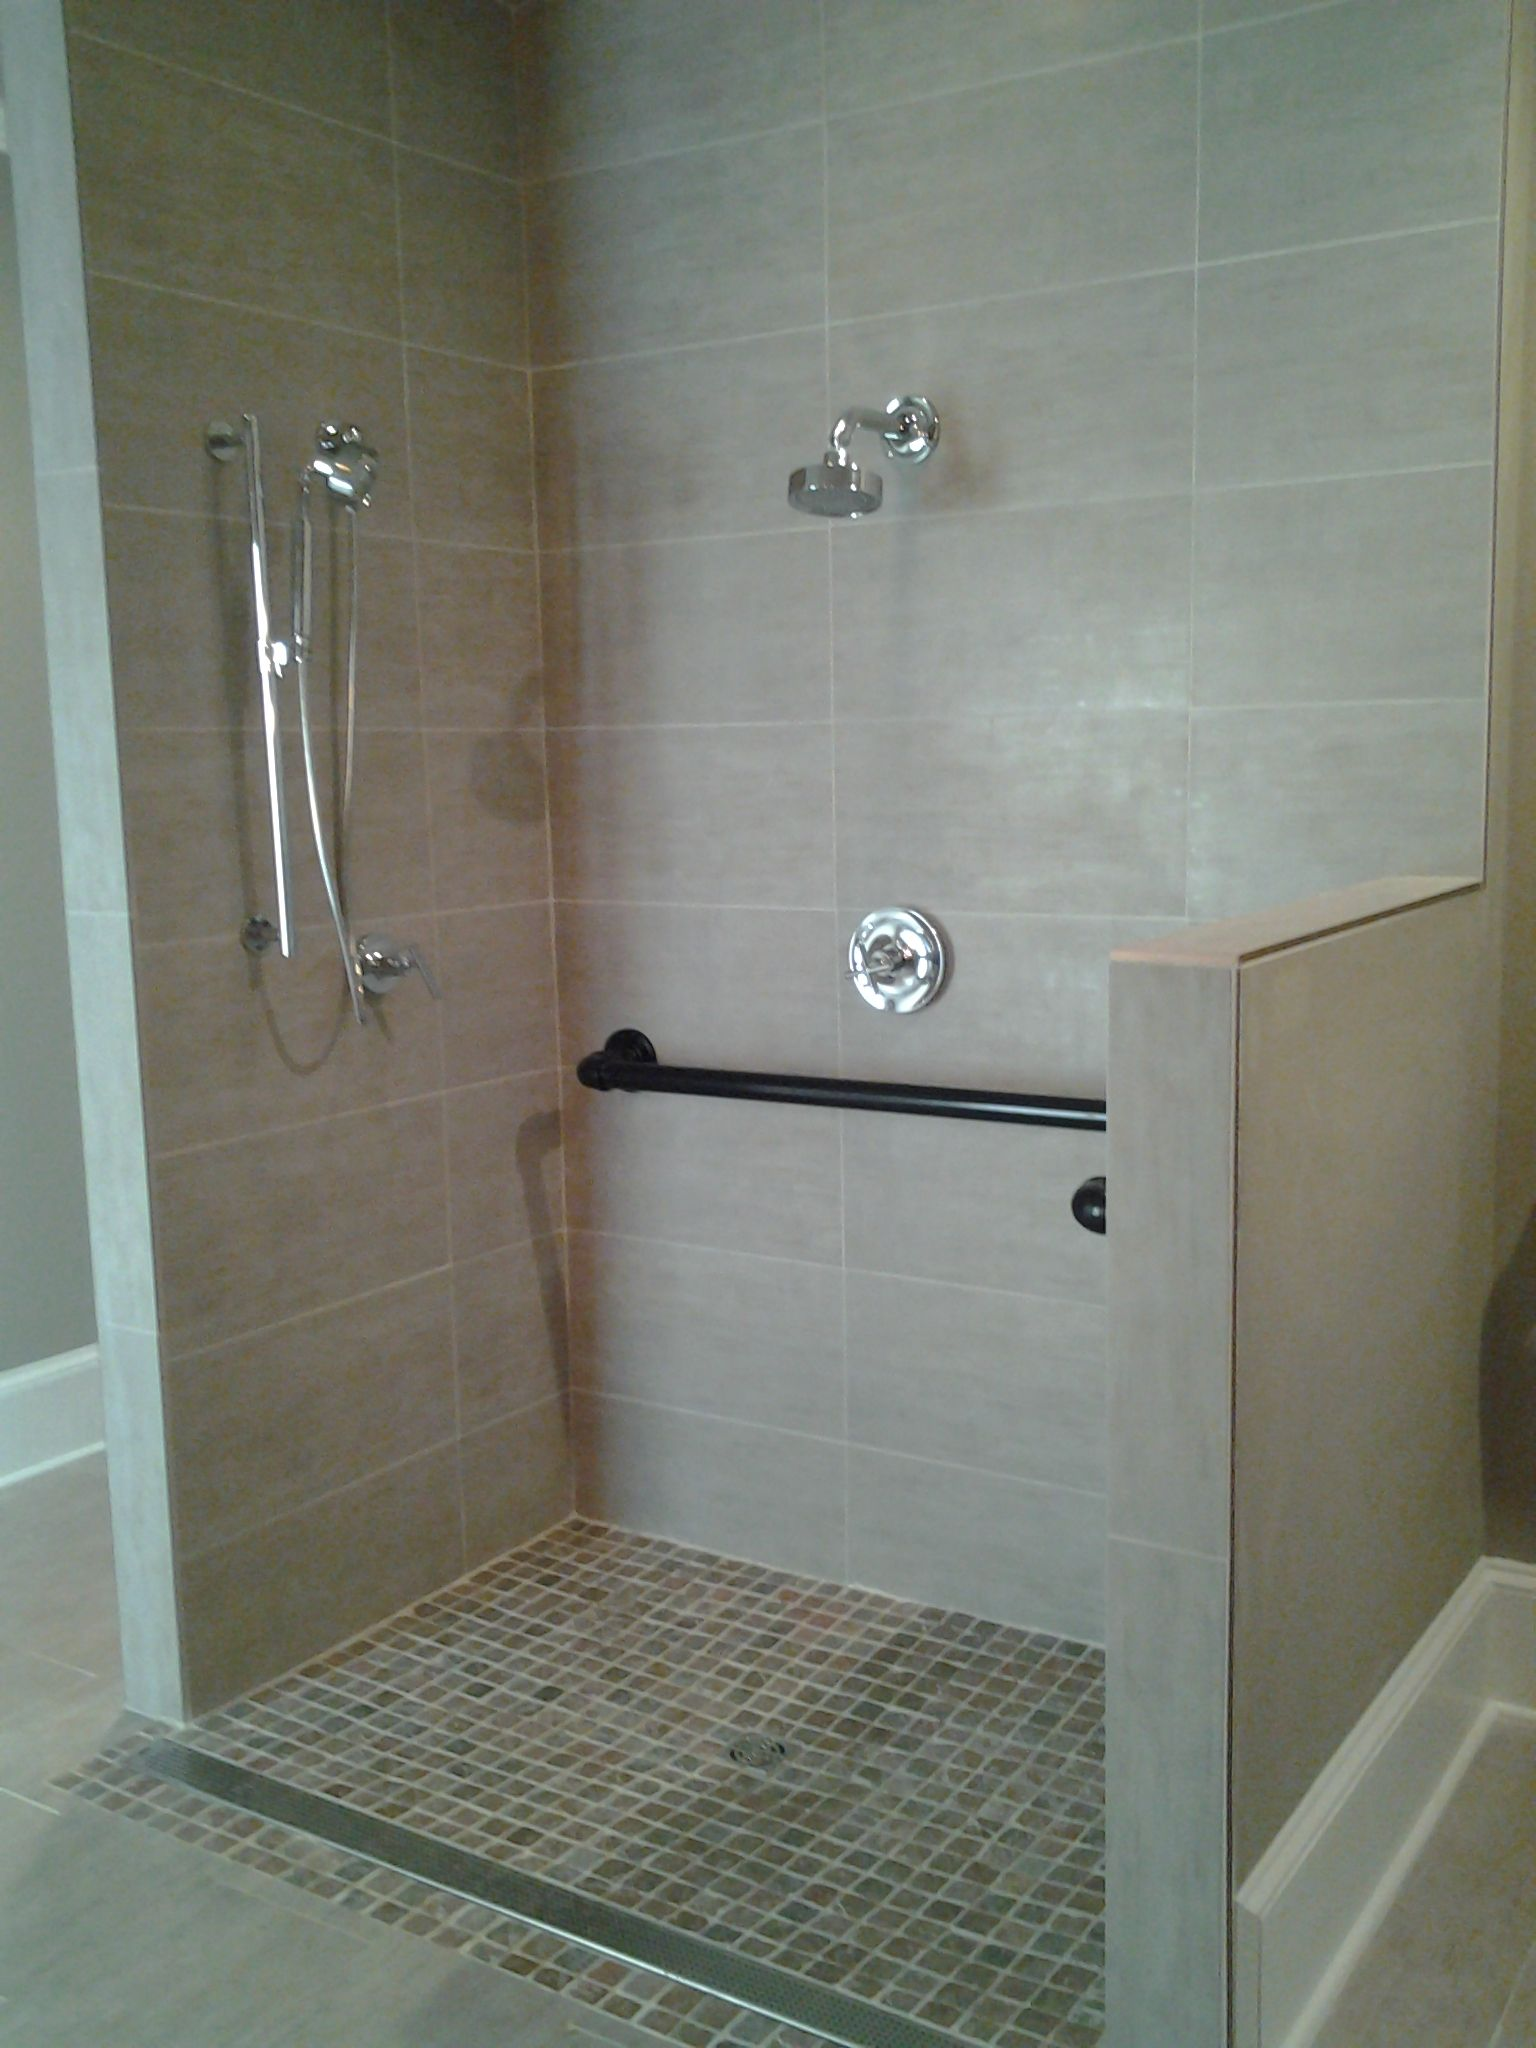 Handicap Bathroom Remodel This Bathroom Has Good Wheelchair Accessibility To Use Sink And